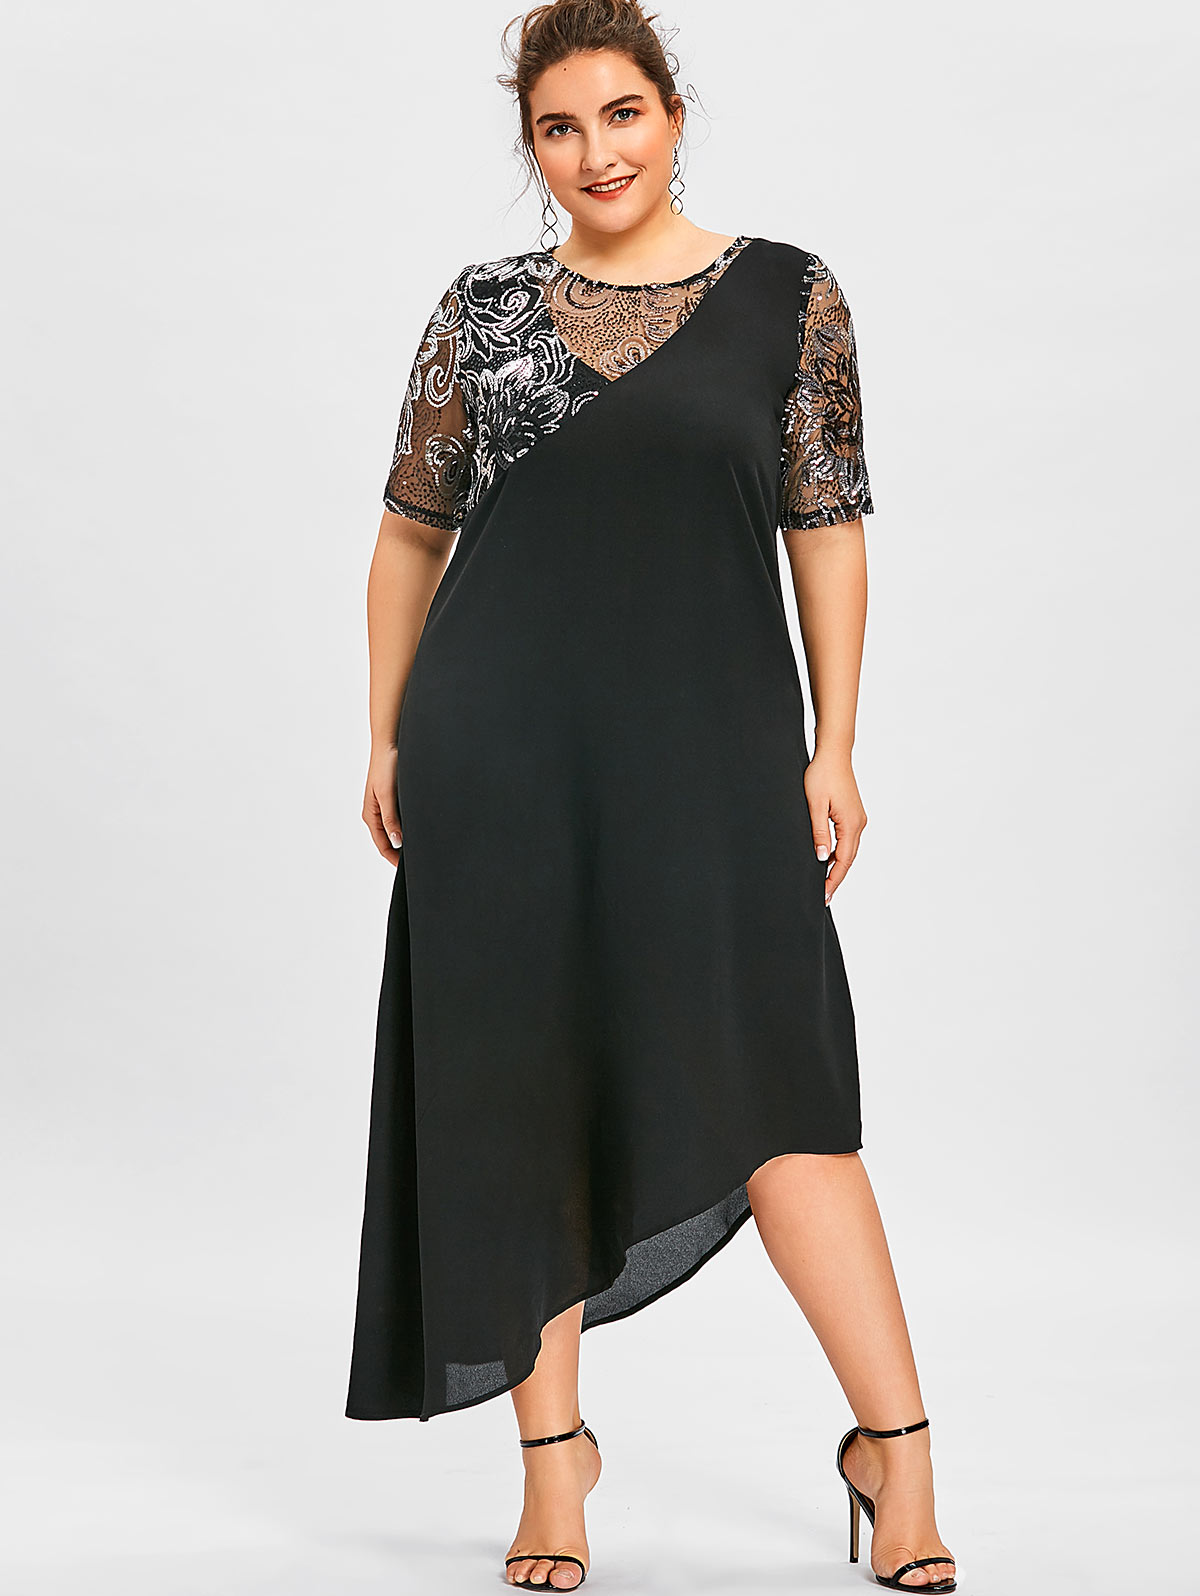 Wipalo Women Sparkly Party Dresses Plus Size 5xl Sequined